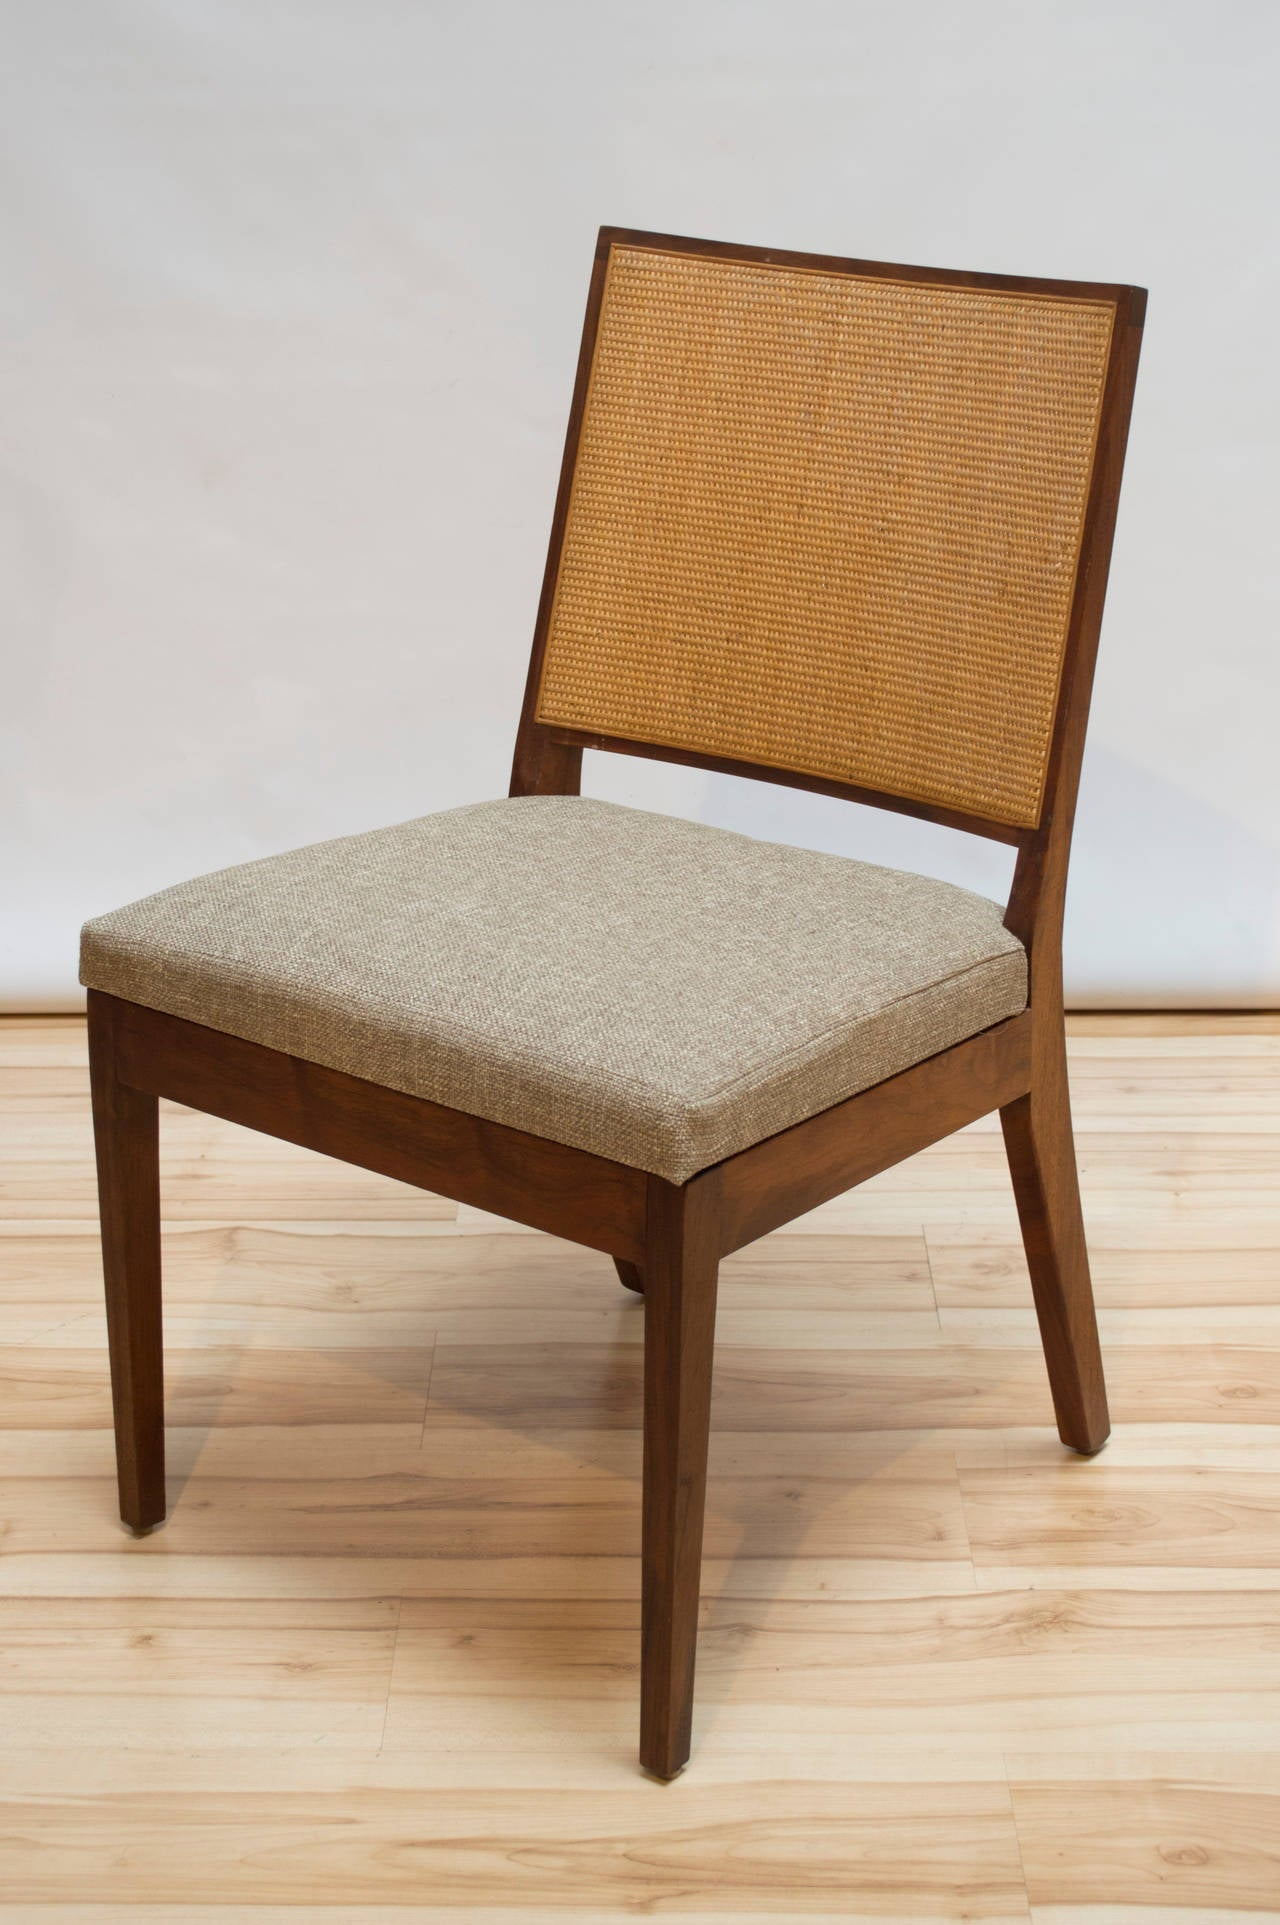 Set of Six Walnut and Cane Dining Chairs by John Kapel for Glenn